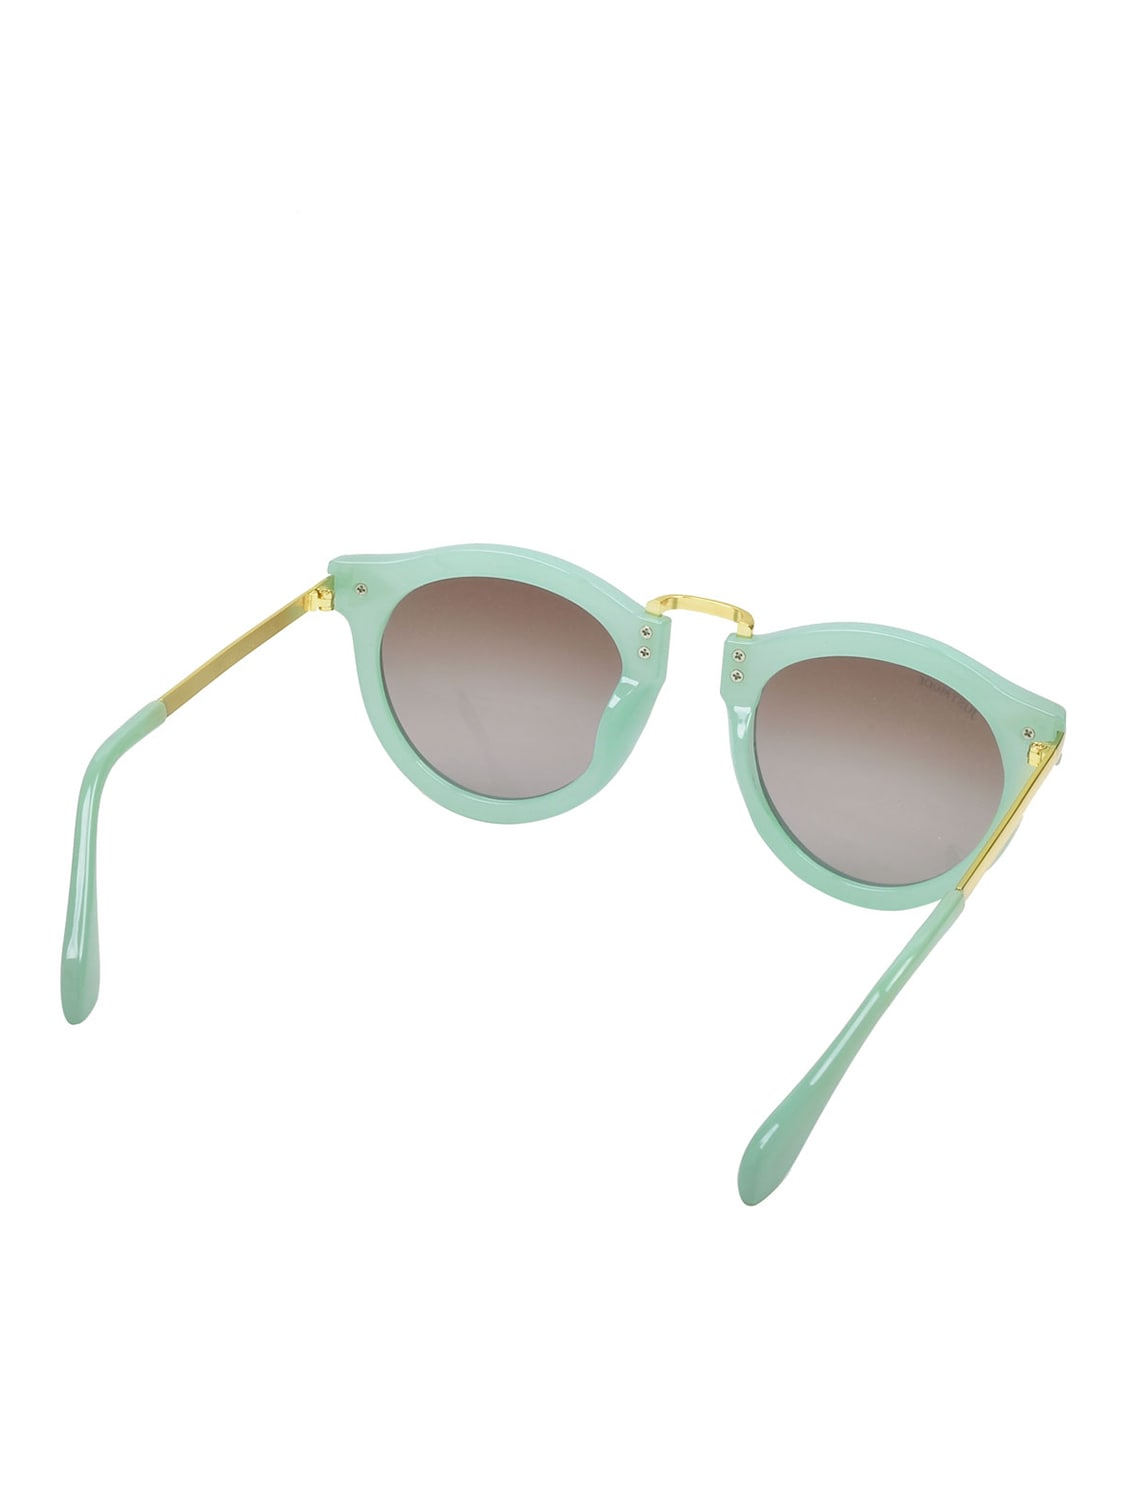 263e47194c Buy Hawai Round Sunglasses by Hawai - Online shopping for Sunglasses in  India